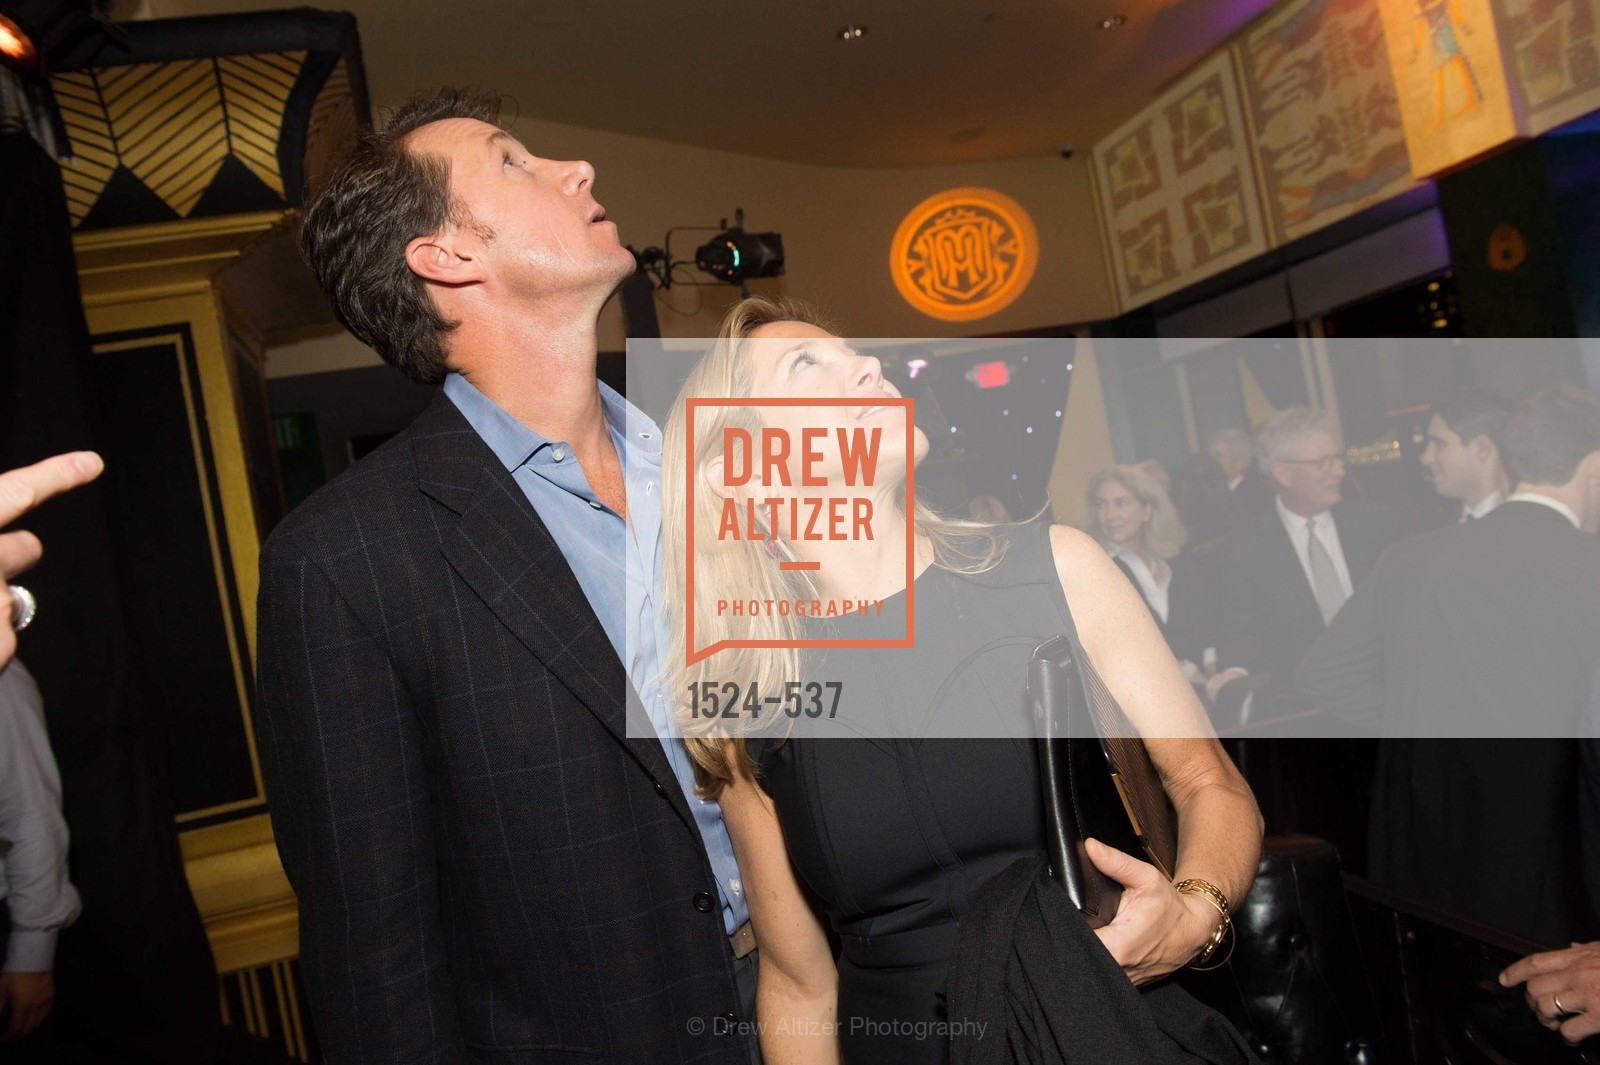 Bo Lasater, Kathryn Lasater, TOP OF THE MARK'S 75TH Anniversary Party, US, November 7th, 2014,Drew Altizer, Drew Altizer Photography, full-service agency, private events, San Francisco photographer, photographer california